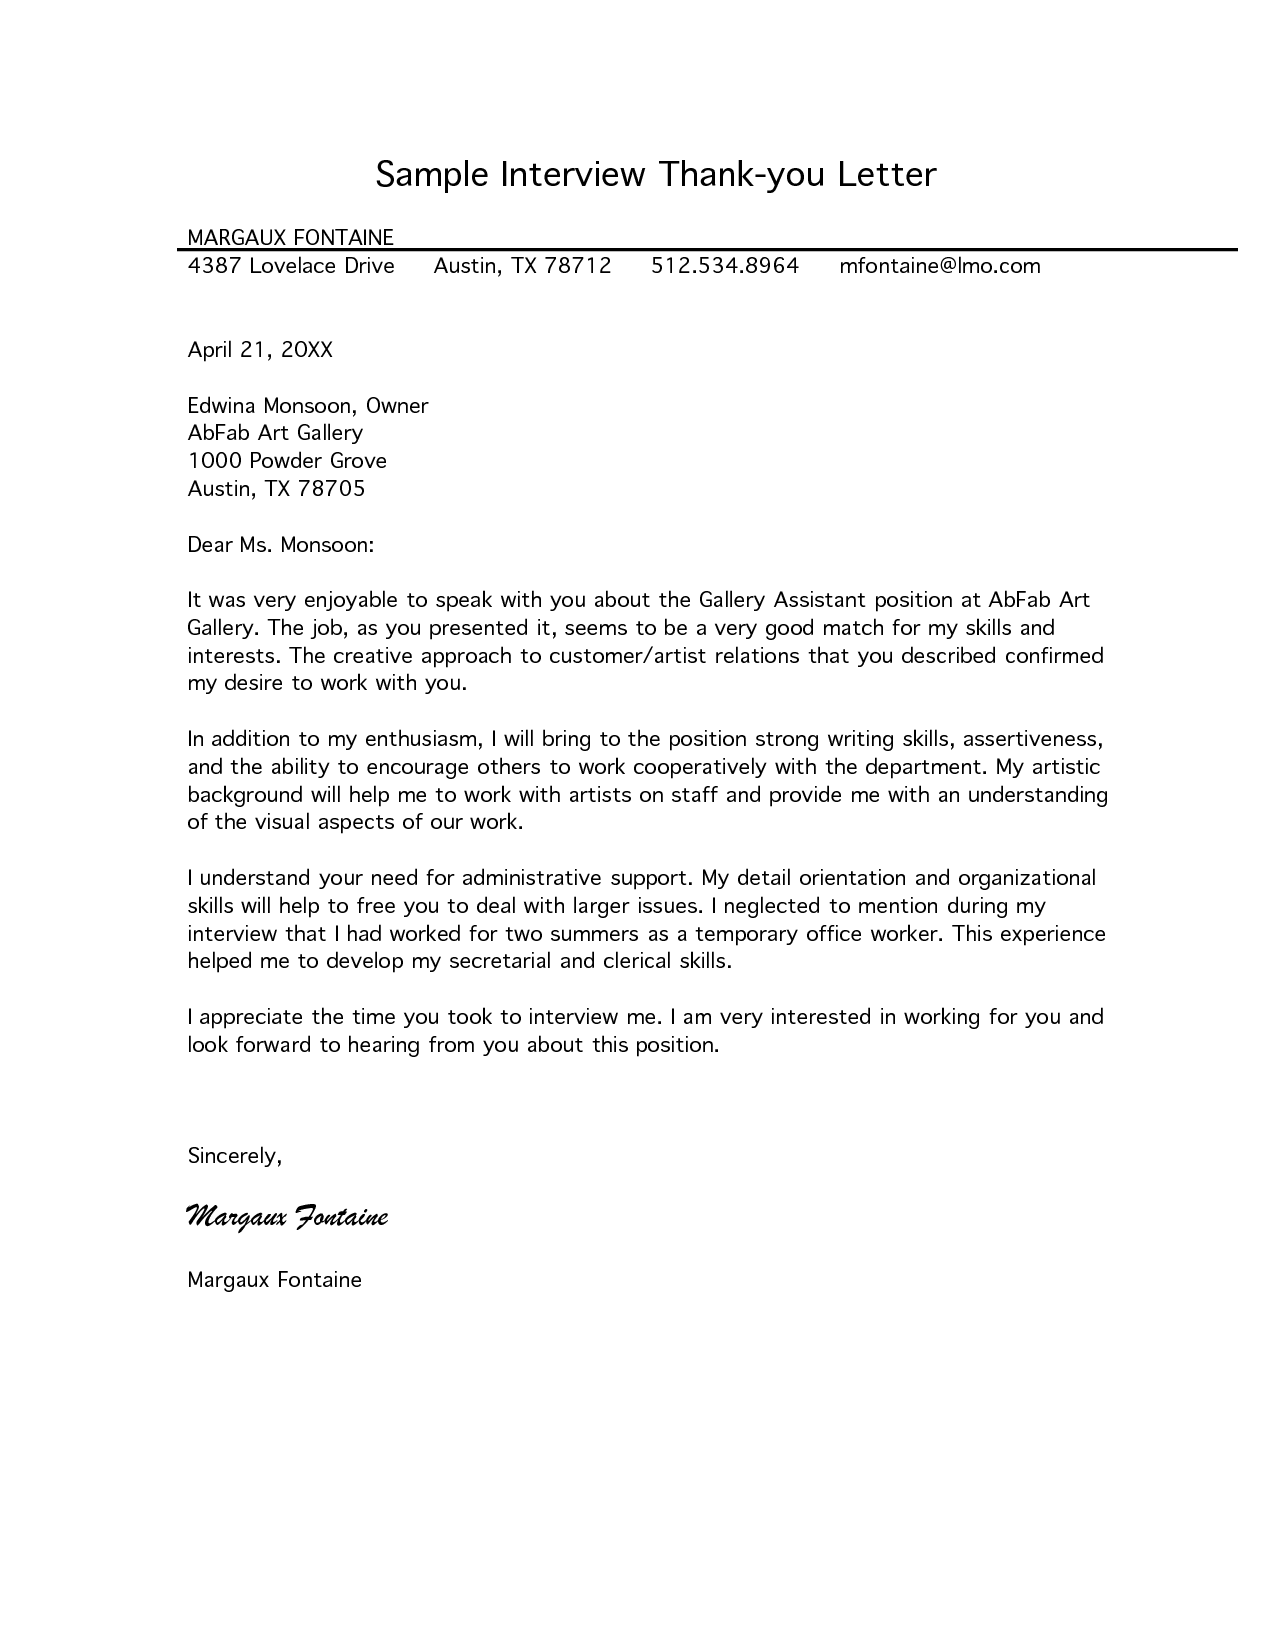 third interview thank you letter sample images letter format